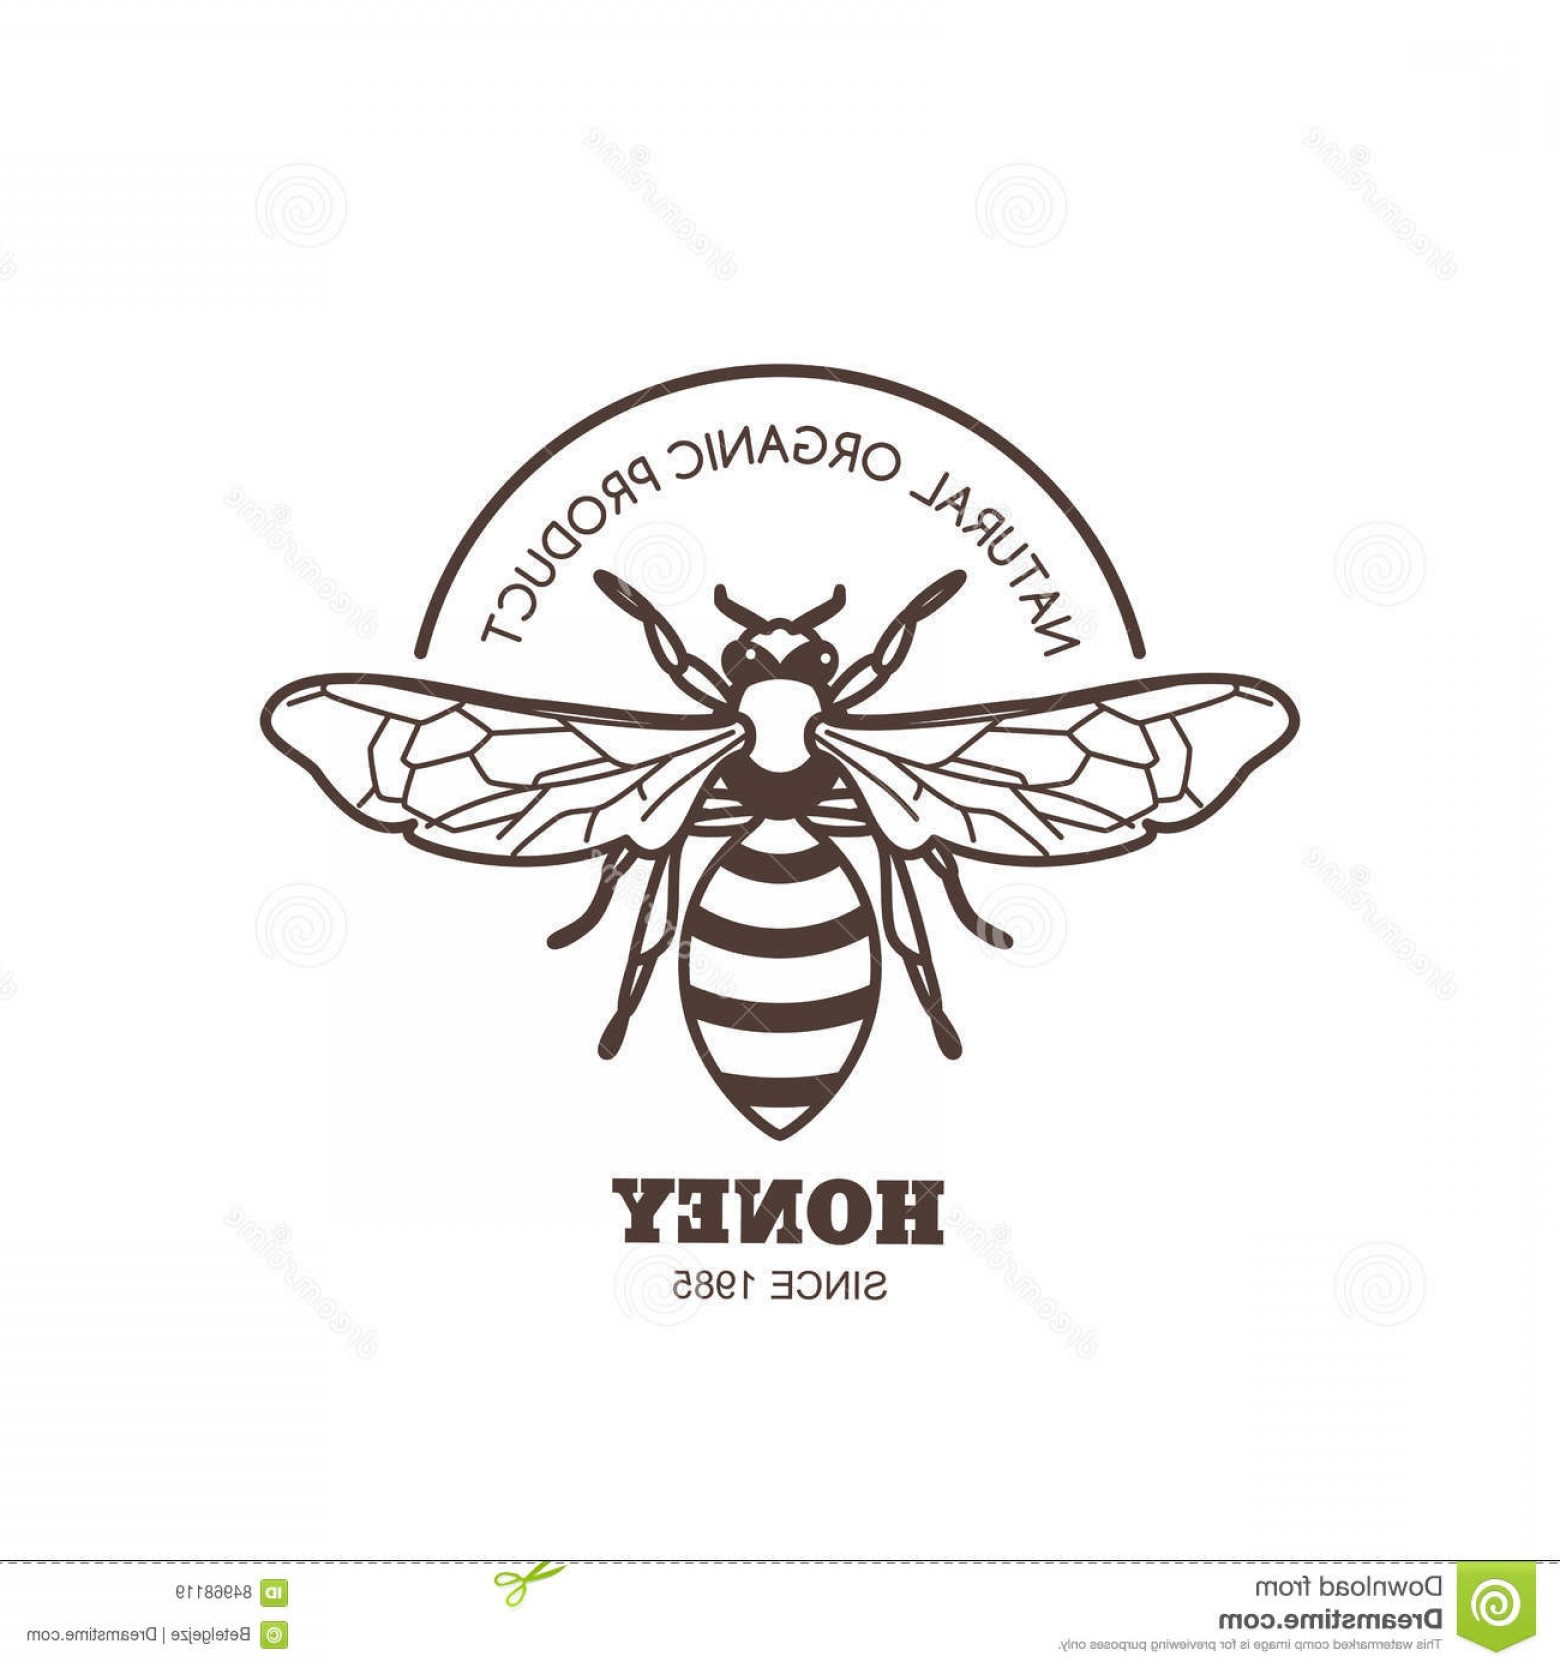 Bee Outline Vector: Stock Illustration Vector Vintage Honey Label Design Outline Honeybee Logo Emblem Linear Bee White Background Concept Organic Image